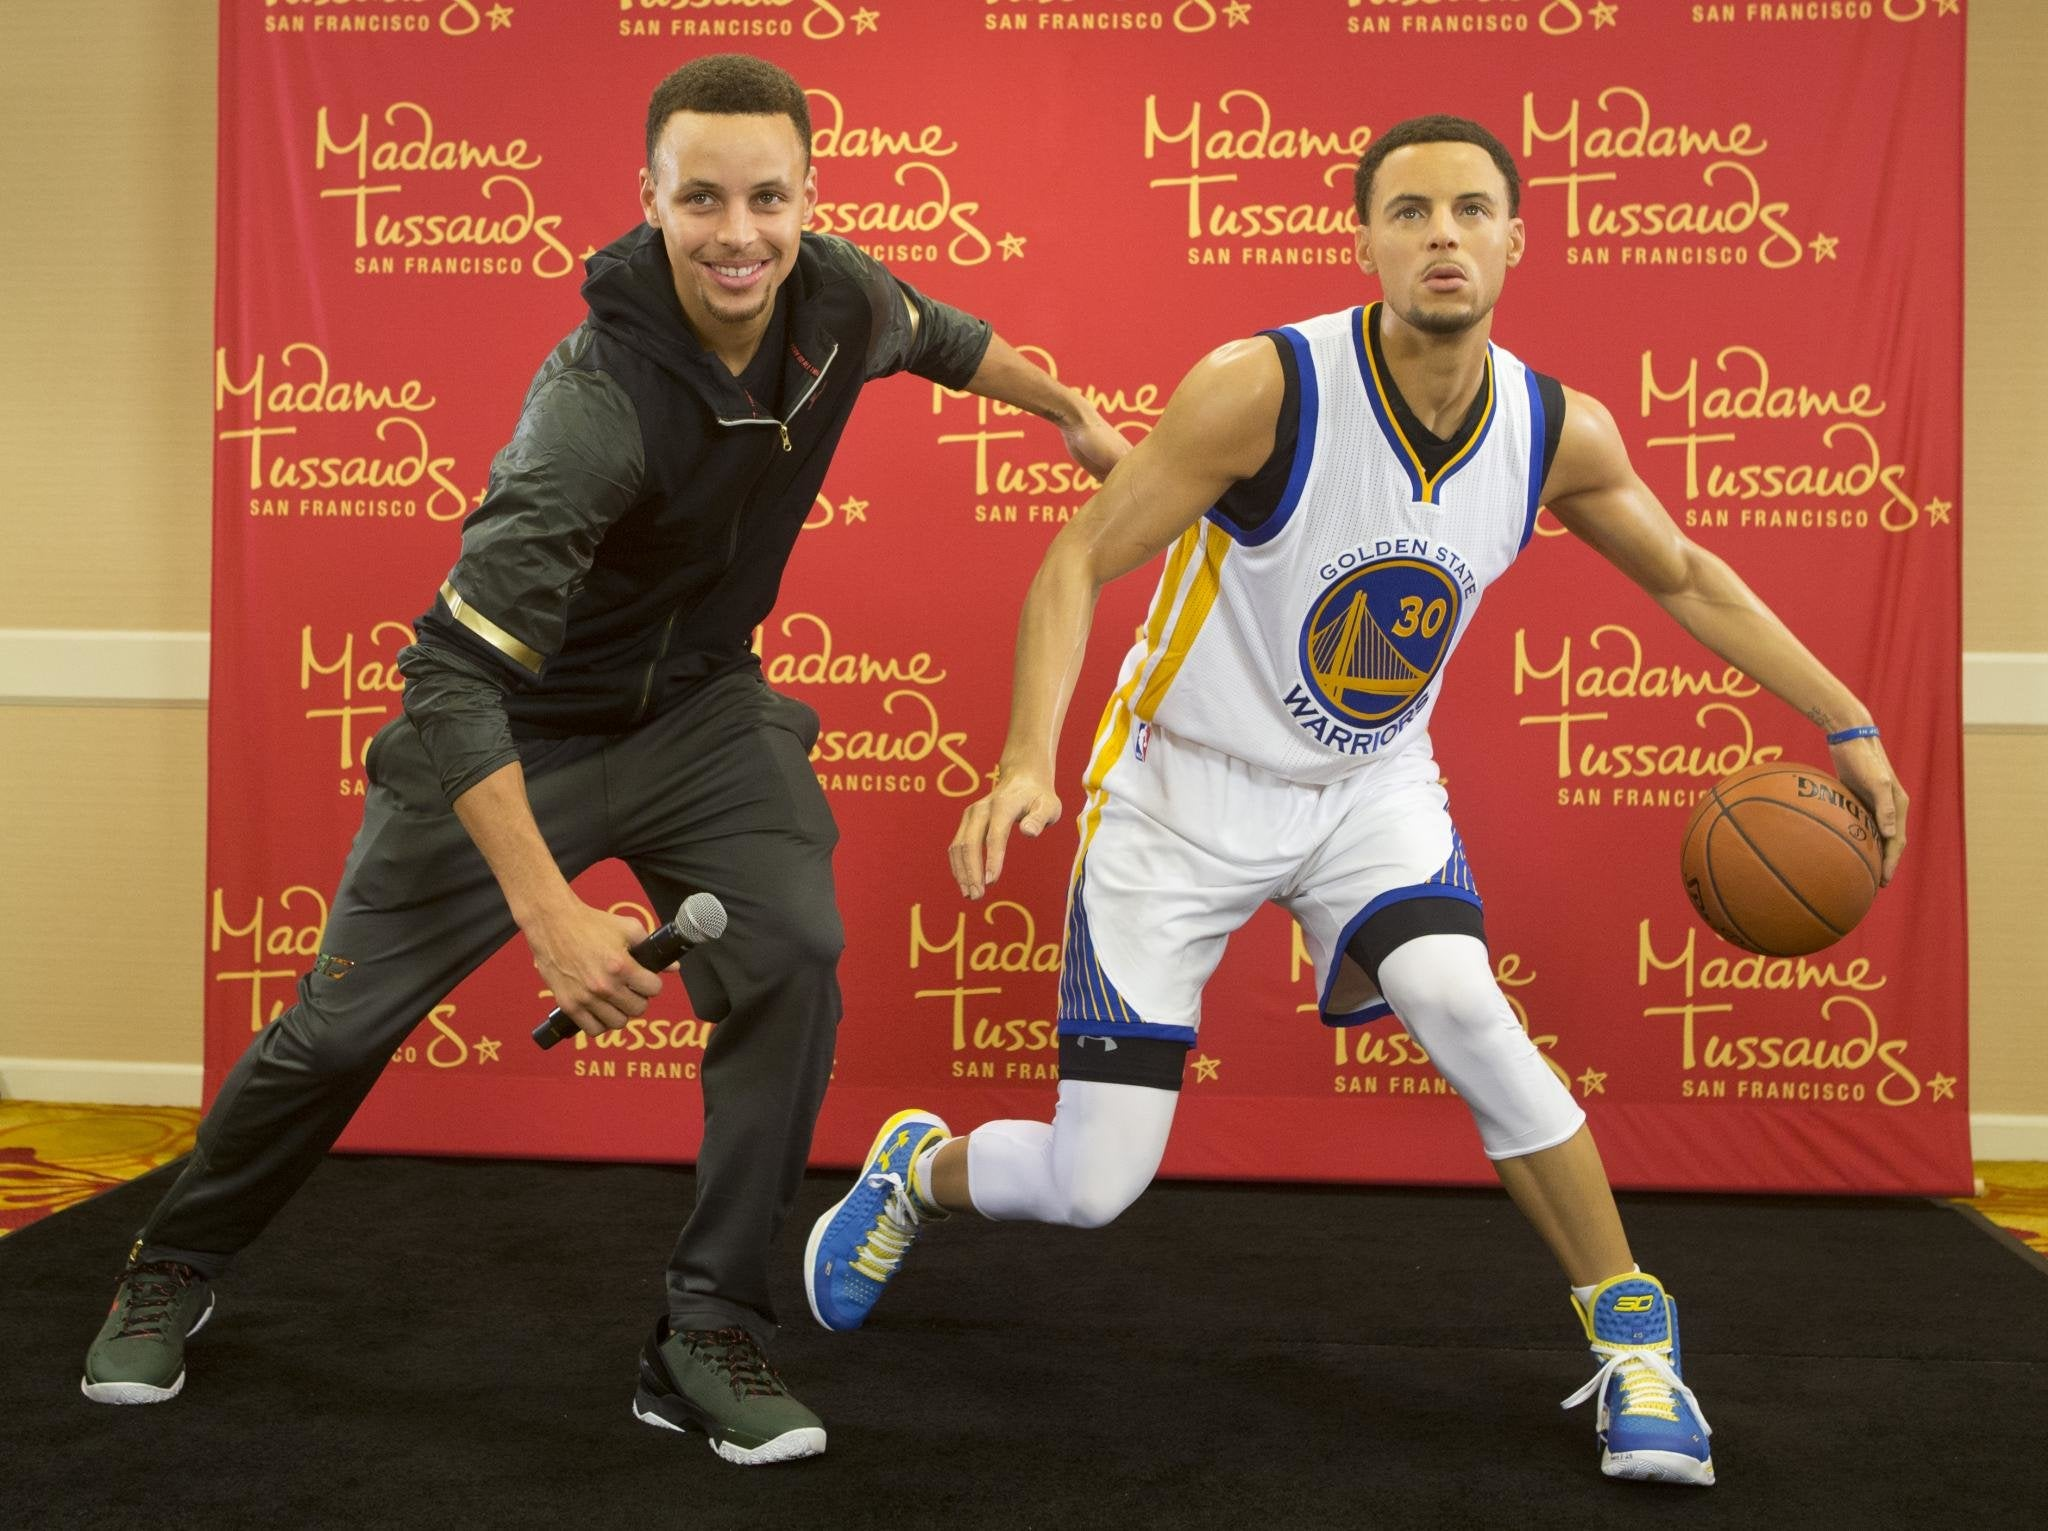 Steph Curry Gets a Wax Figure at Madame Tussauds